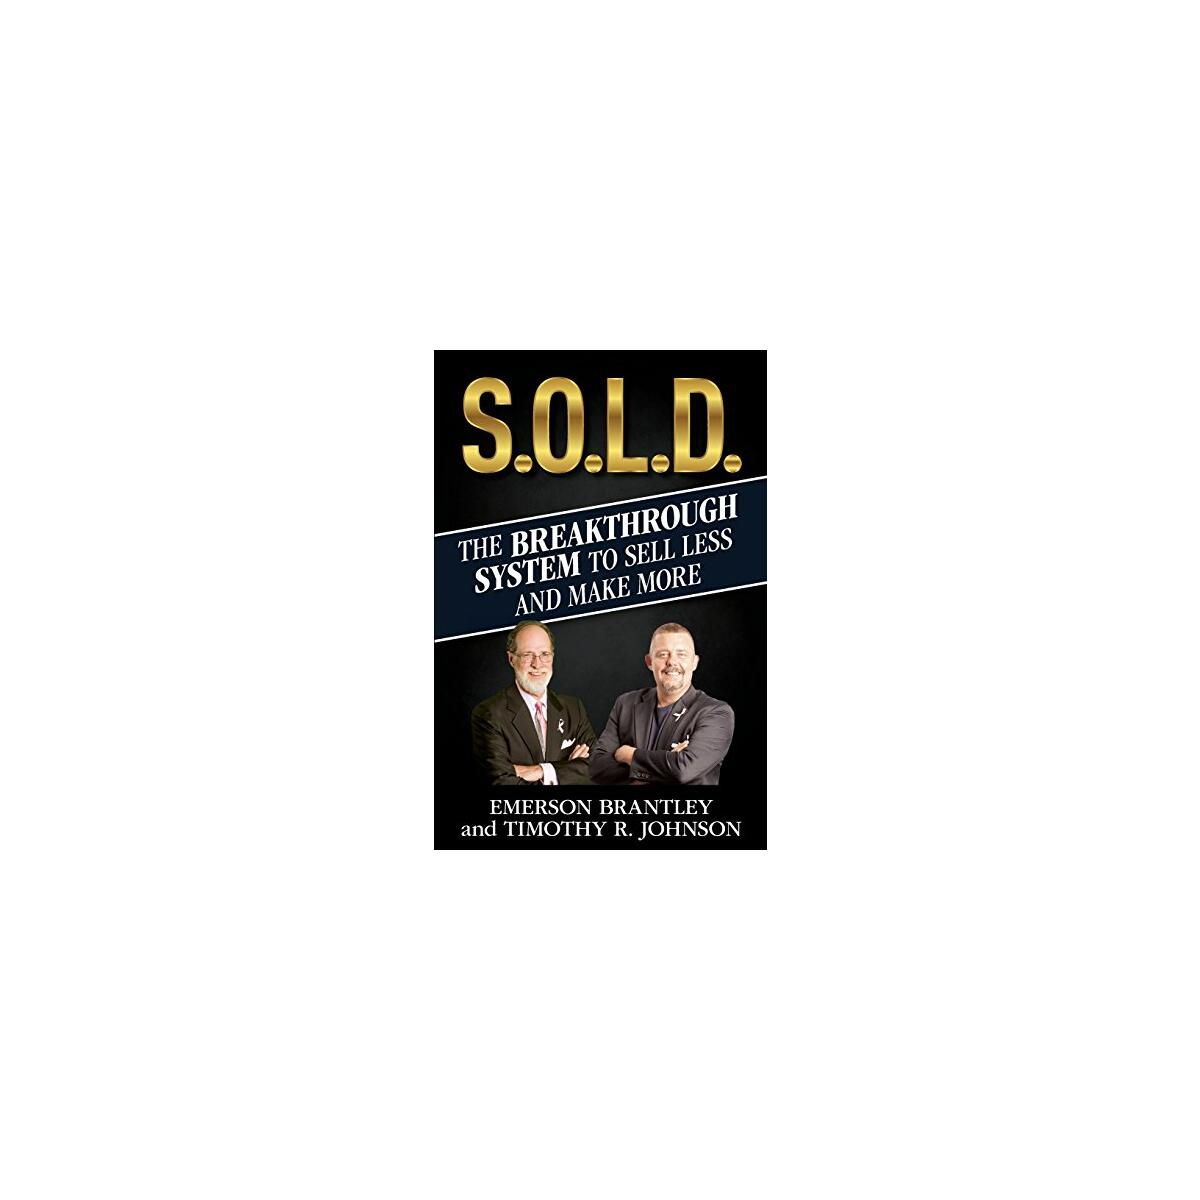 S.O.L.D. The Breakthrough System To Sell Less And Make More